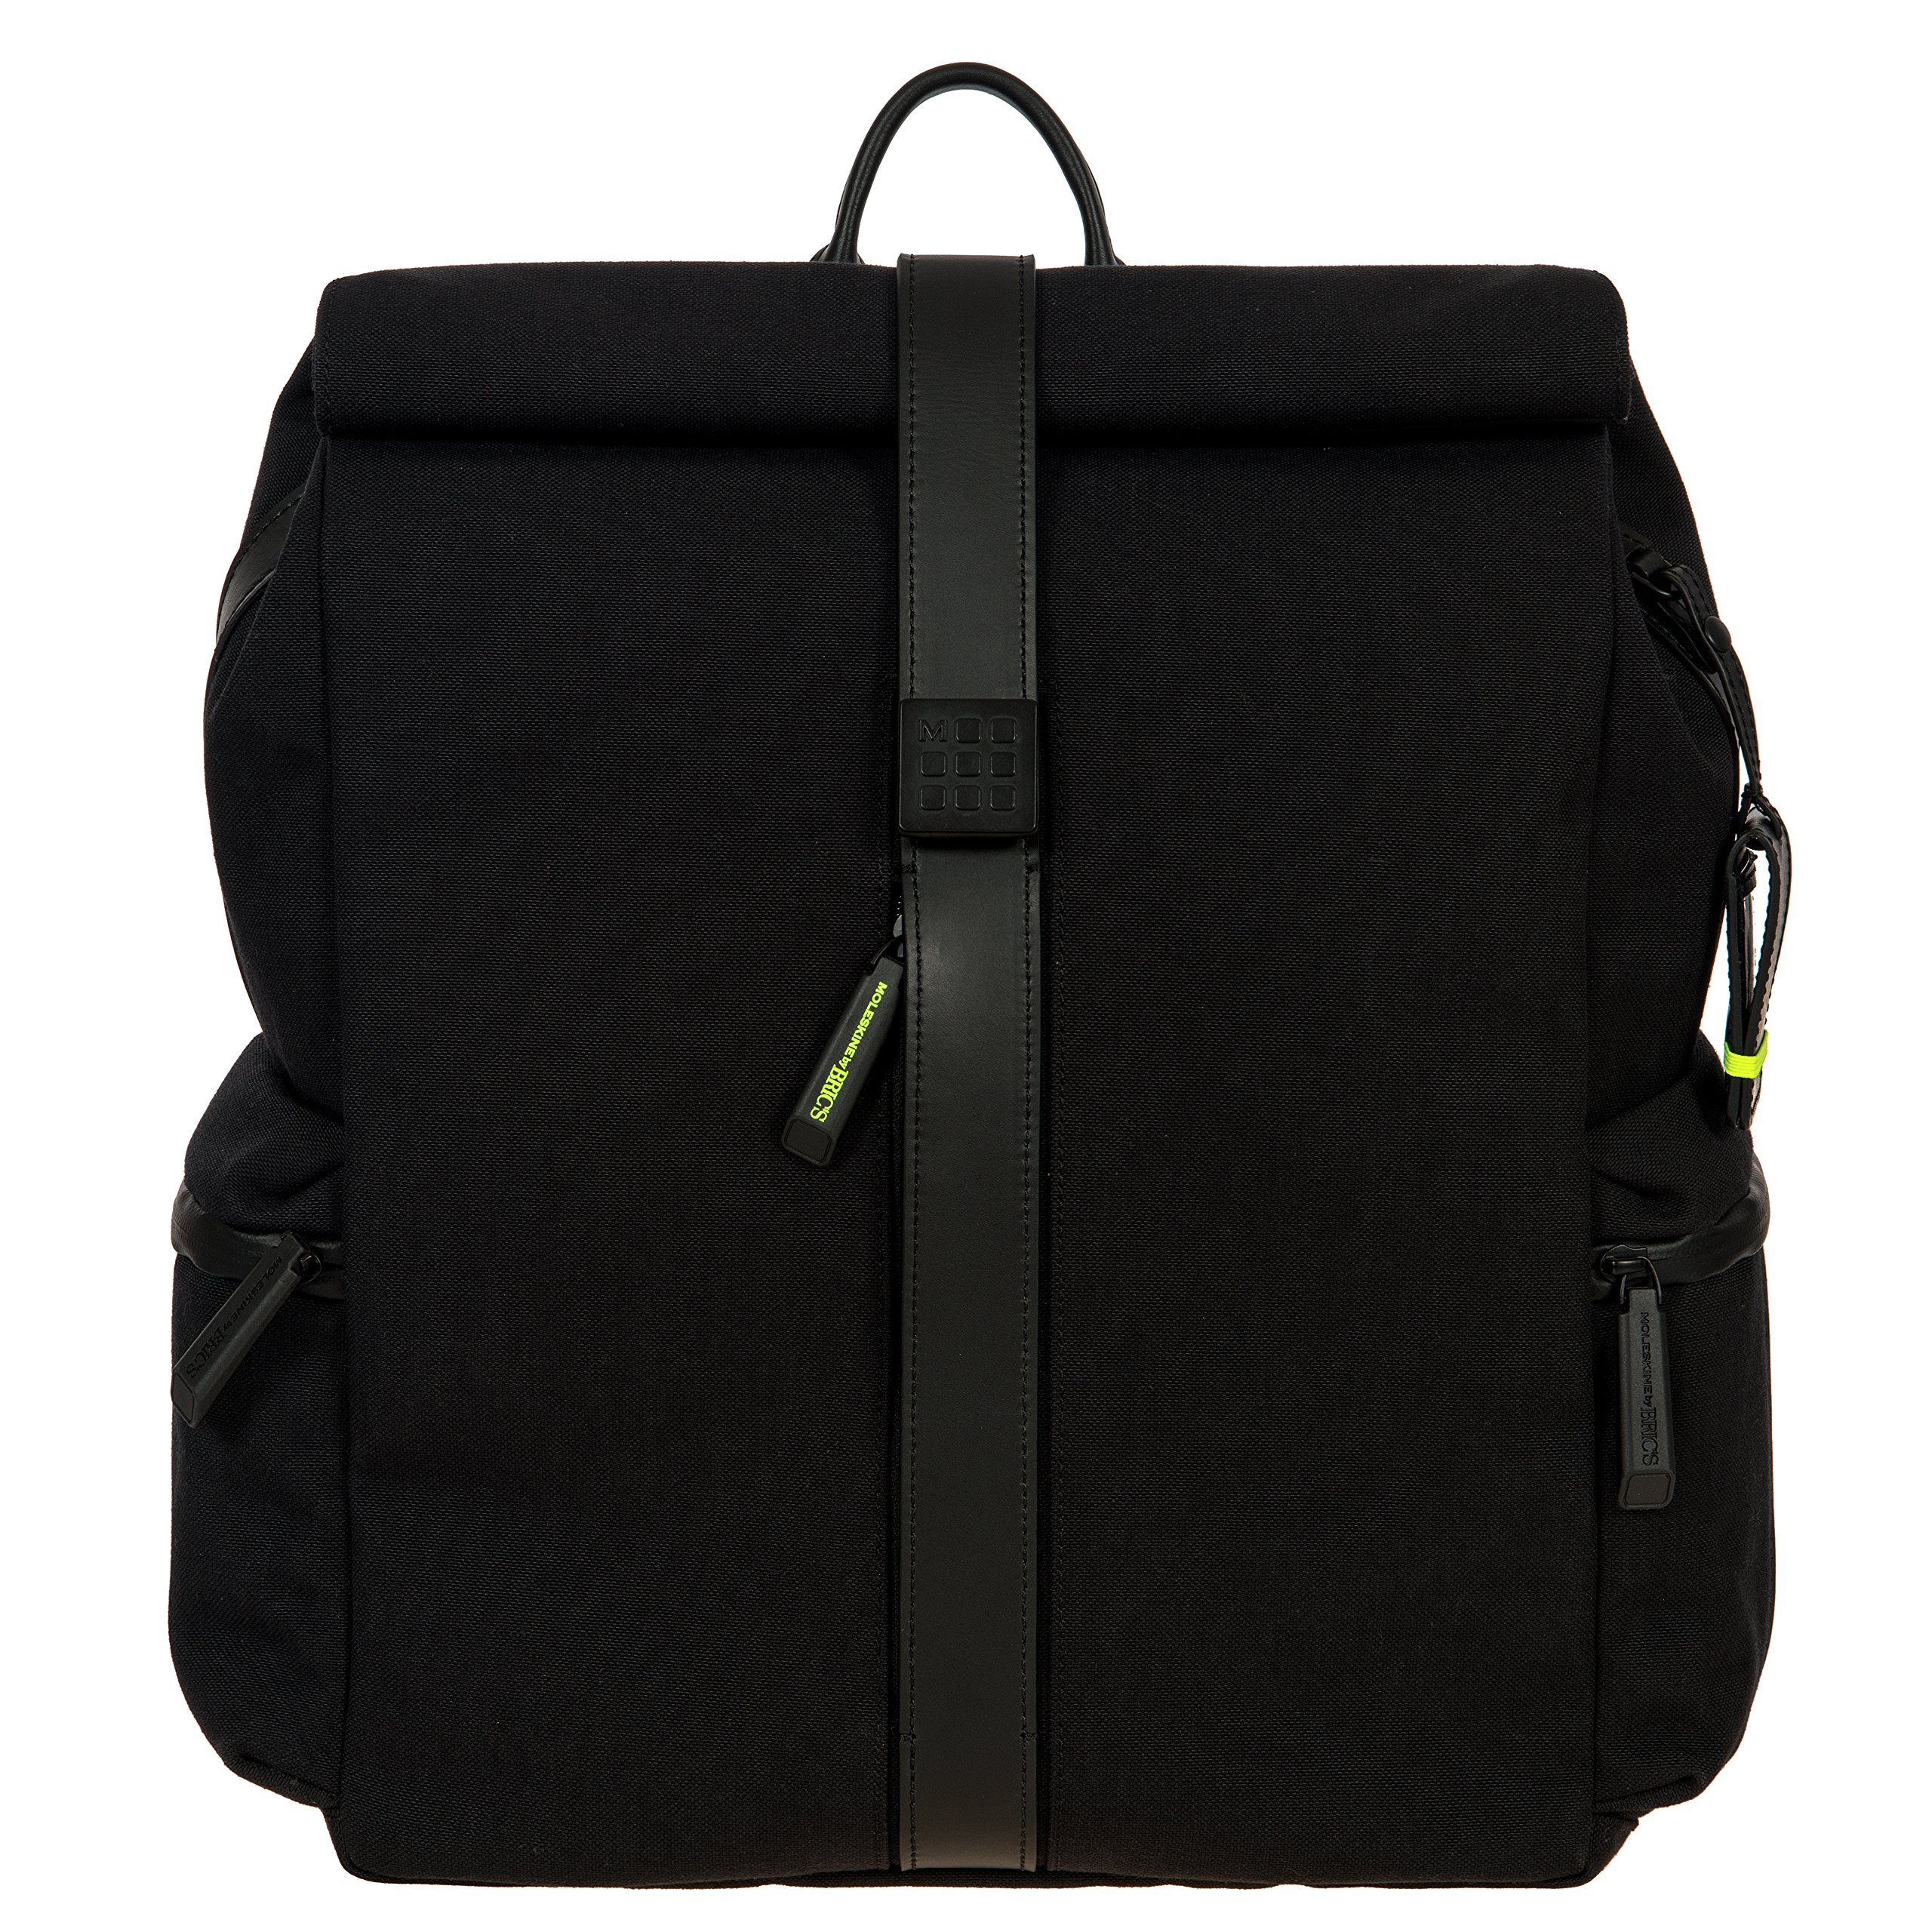 Moleskin by Bric's Roll-Top Laptop Backpack, Black, One Size